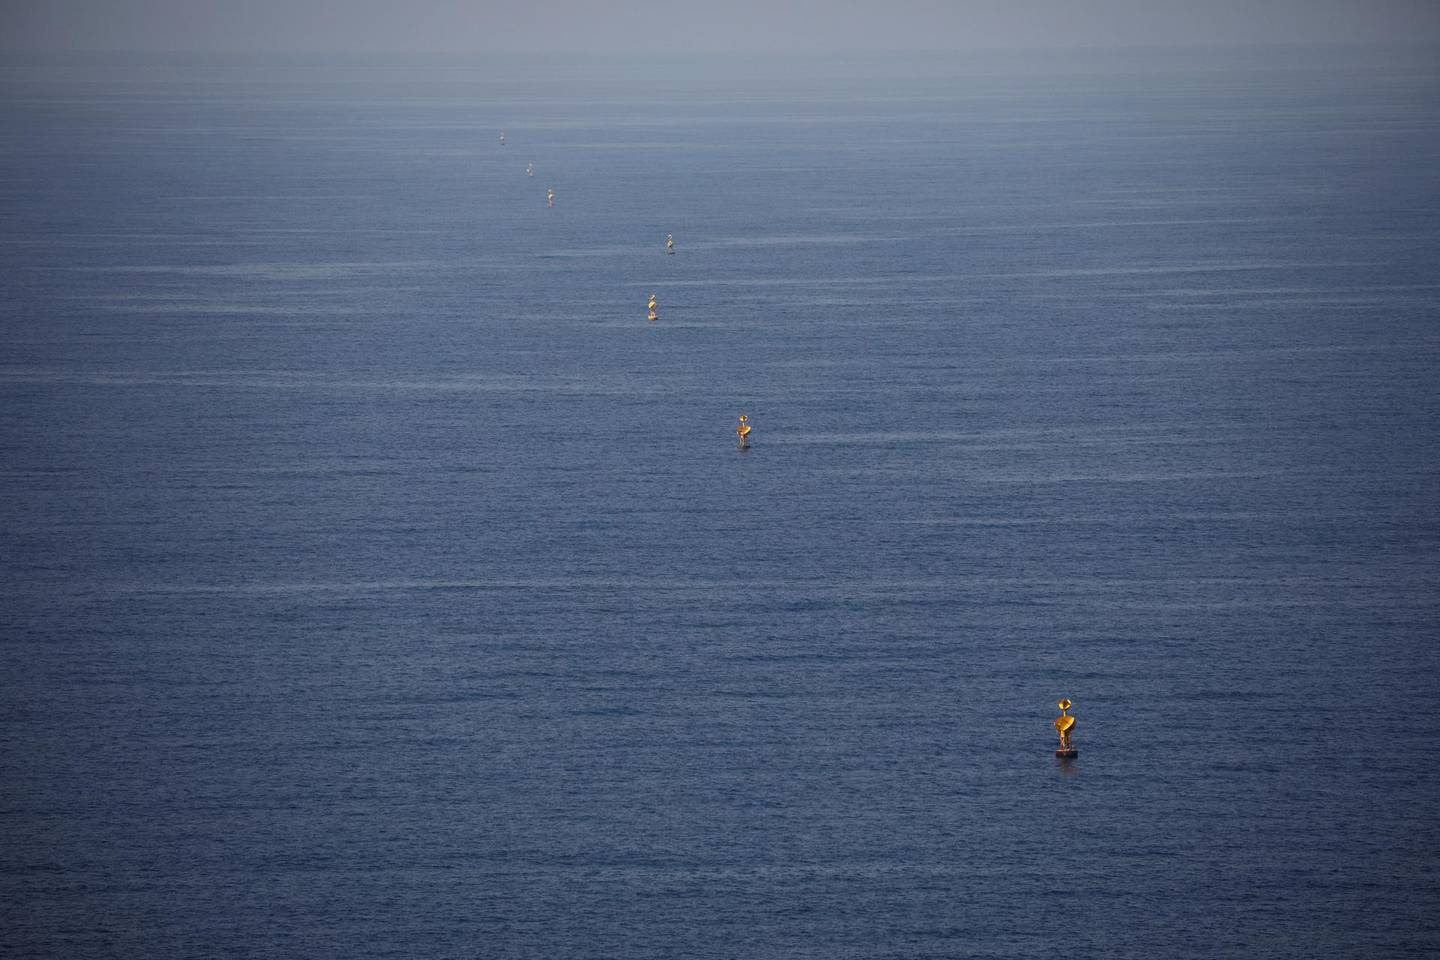 FILE PHOTO: Maritime border markers are seen in the Mediterranean Sea near Lebanon, as seen from Rosh Hanikra, northern Israel October 28, 2020. REUTERS/Amir Cohen/File Photo